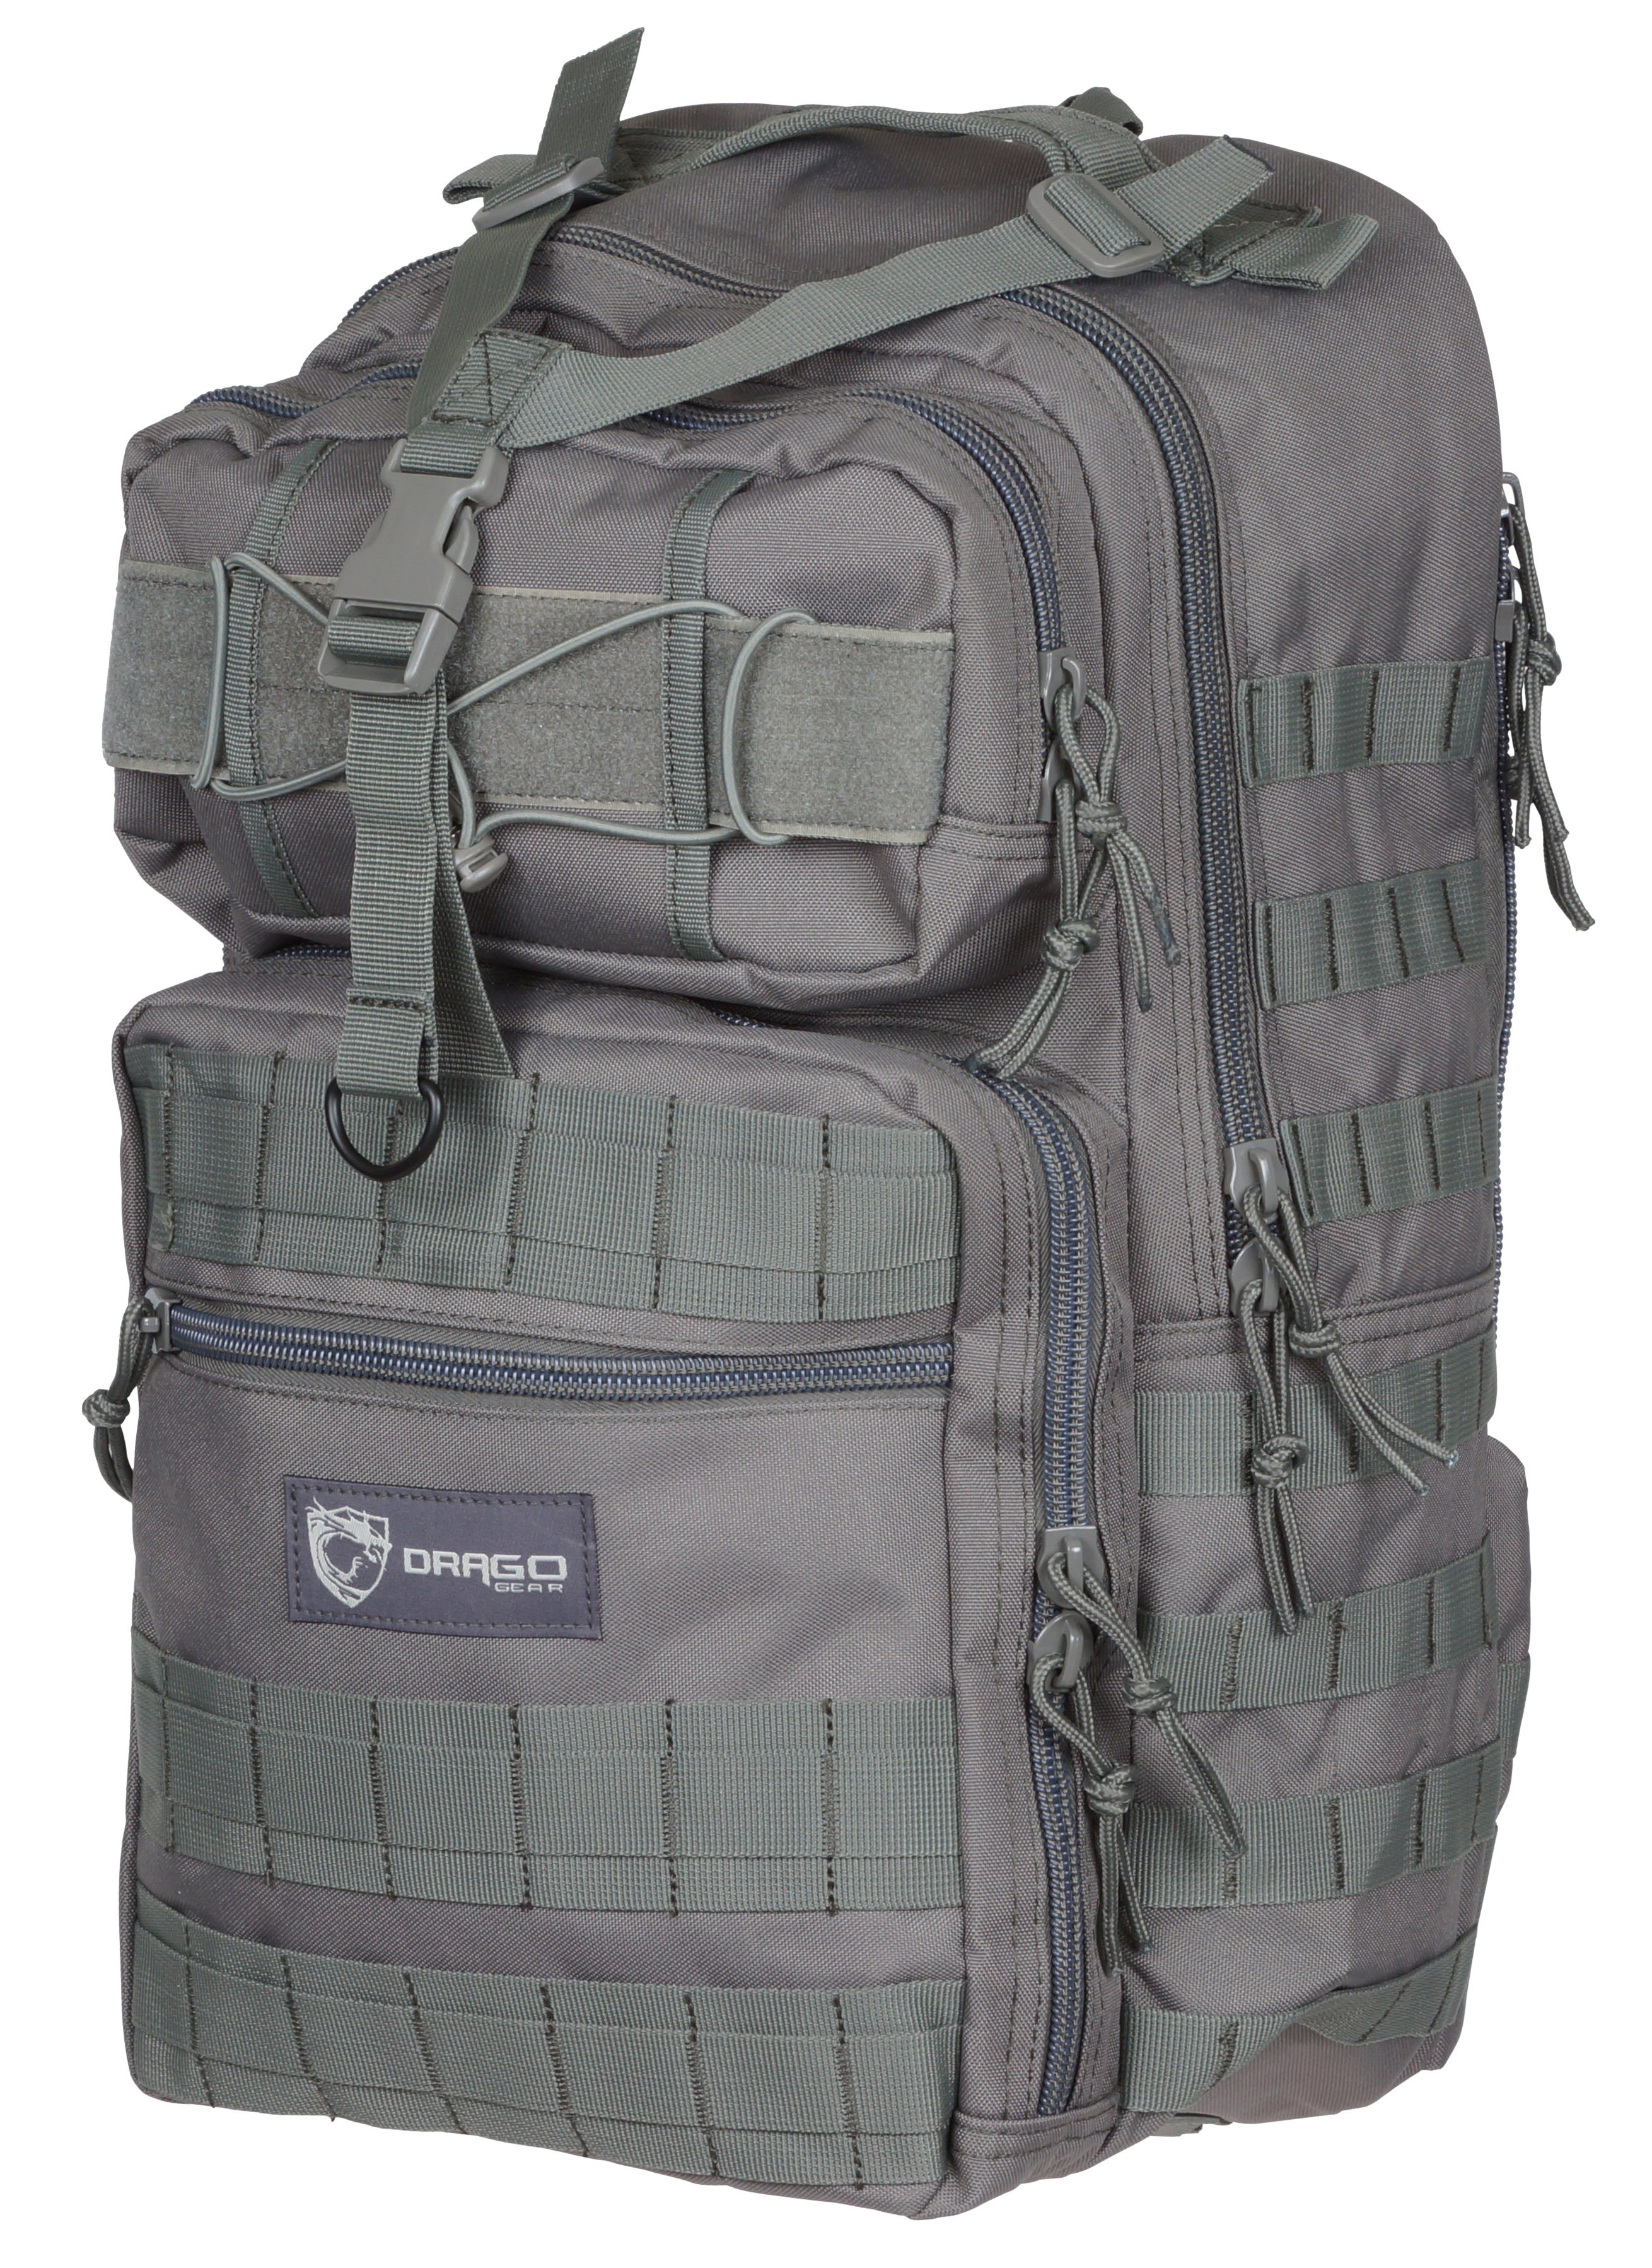 Drago 14308GY Atlus Sling Pack Backpack Tactical 600D Polyester 19